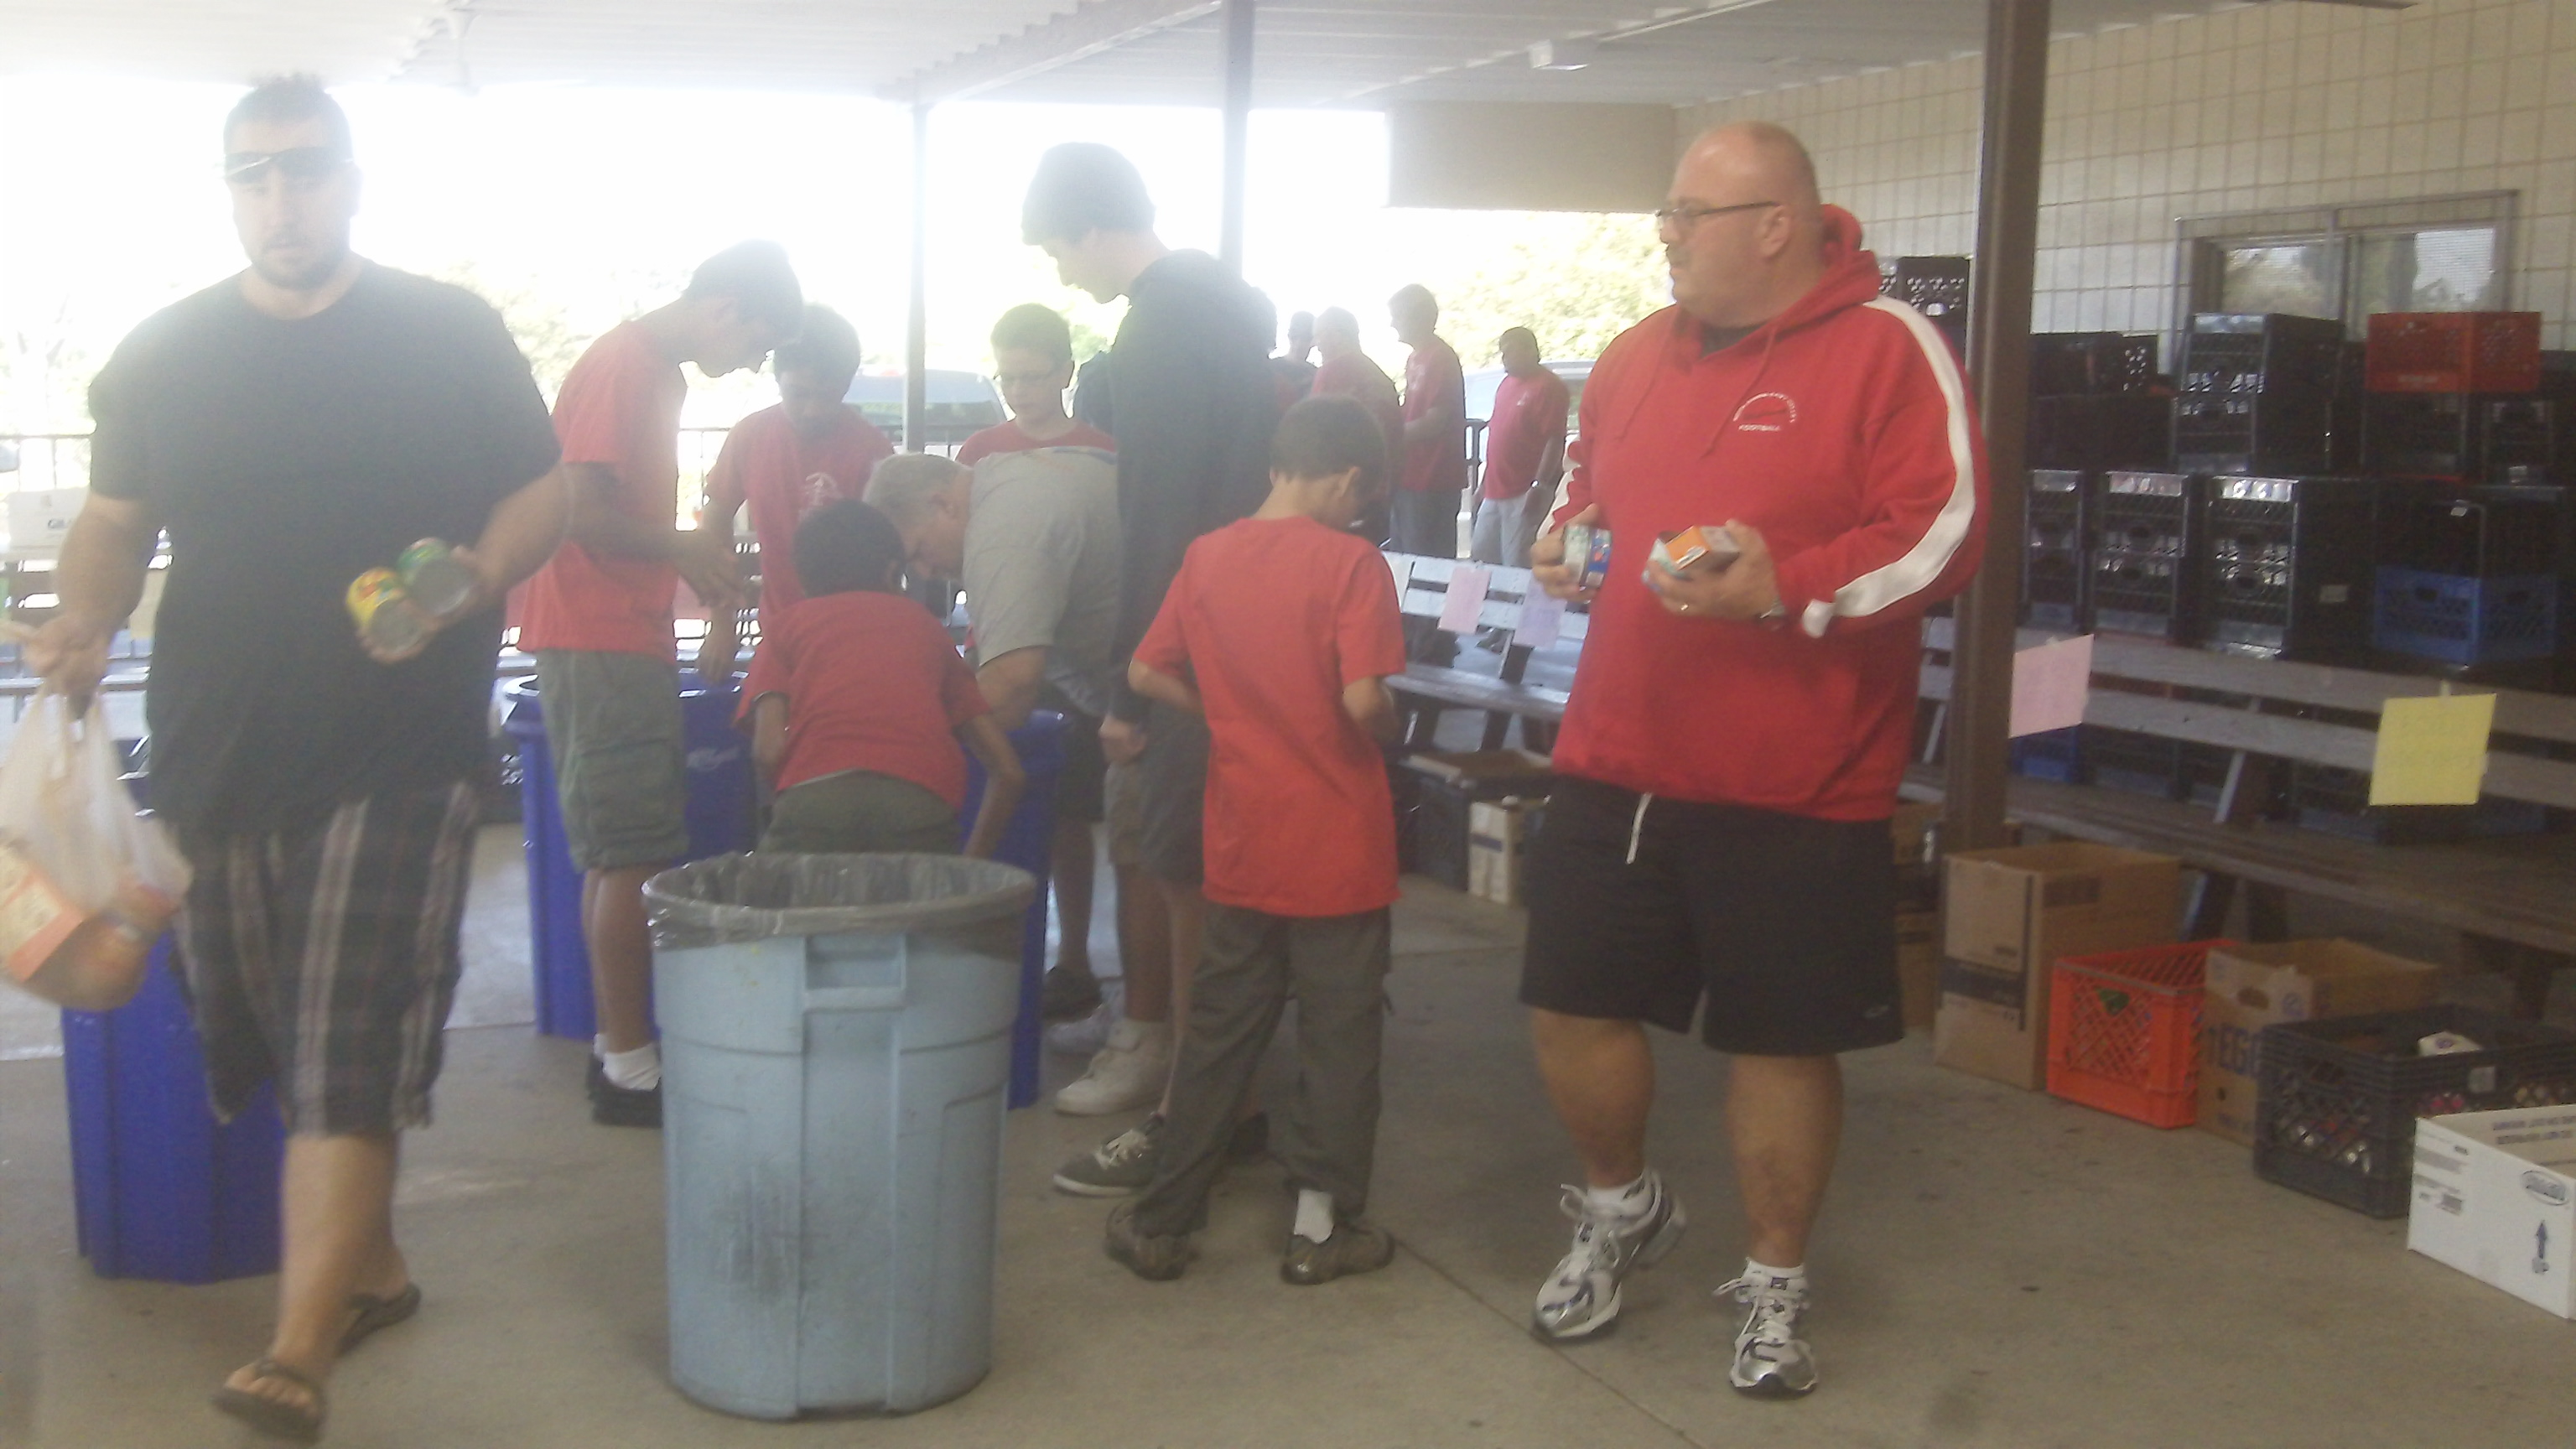 More food to distrubute - Troop 11 Redlands Boy Scouts